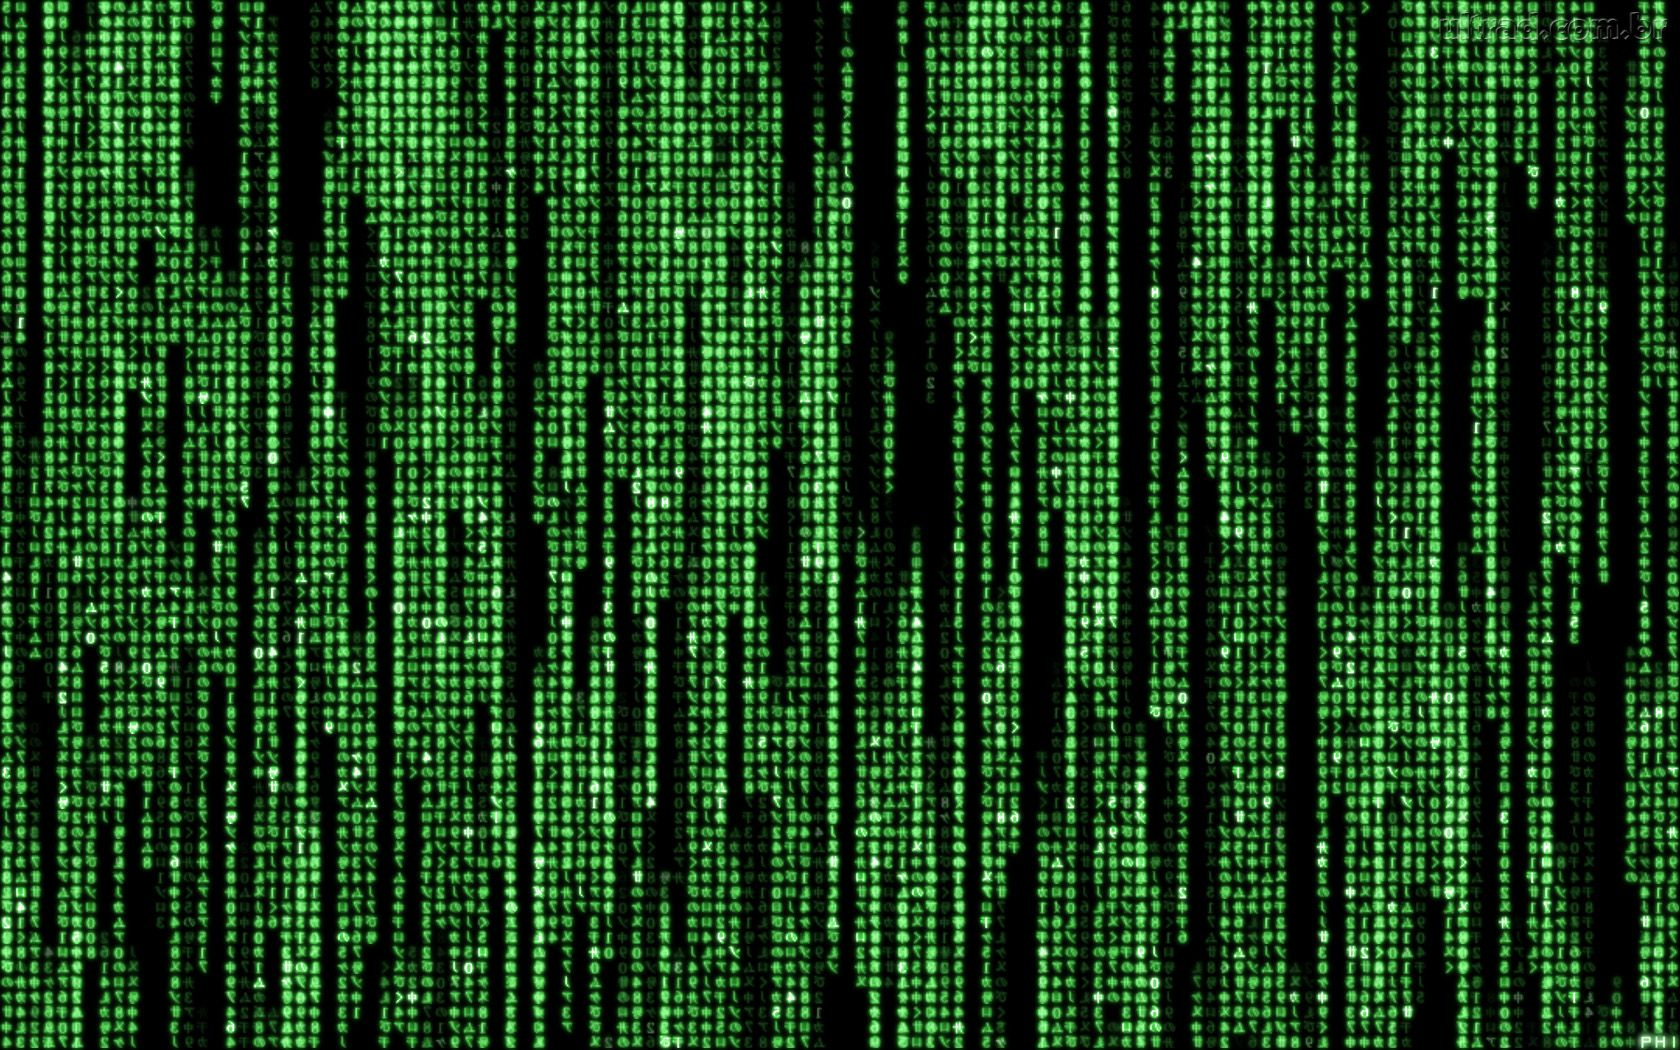 matrix-wallpapers